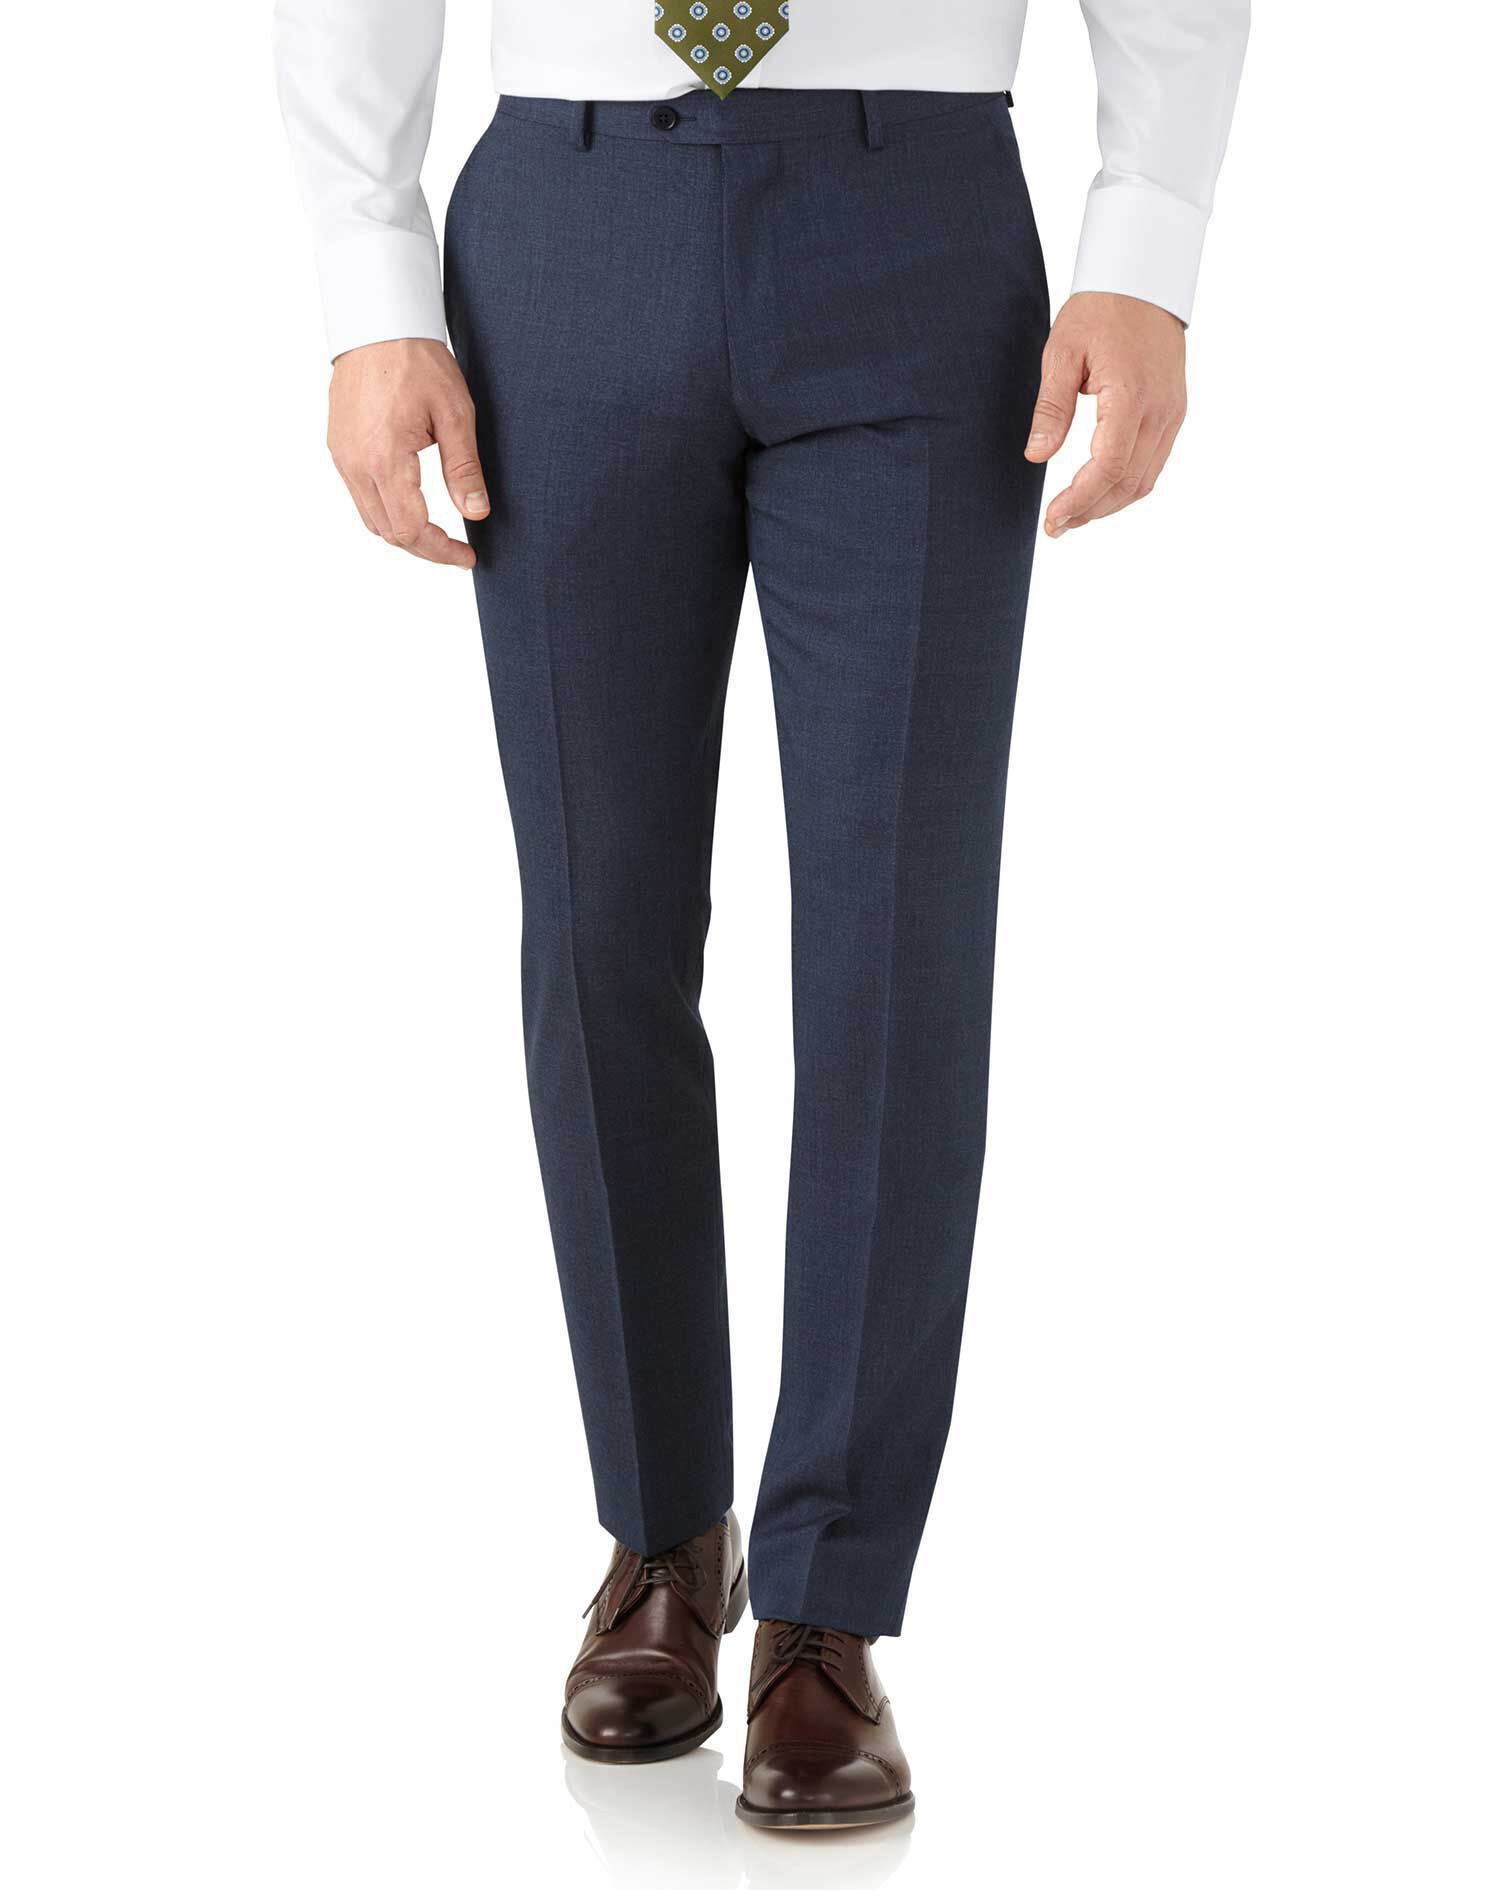 Airforce Blue Slim Fit Hairline Business Suit Trousers Size W30 L38 by Charles Tyrwhitt